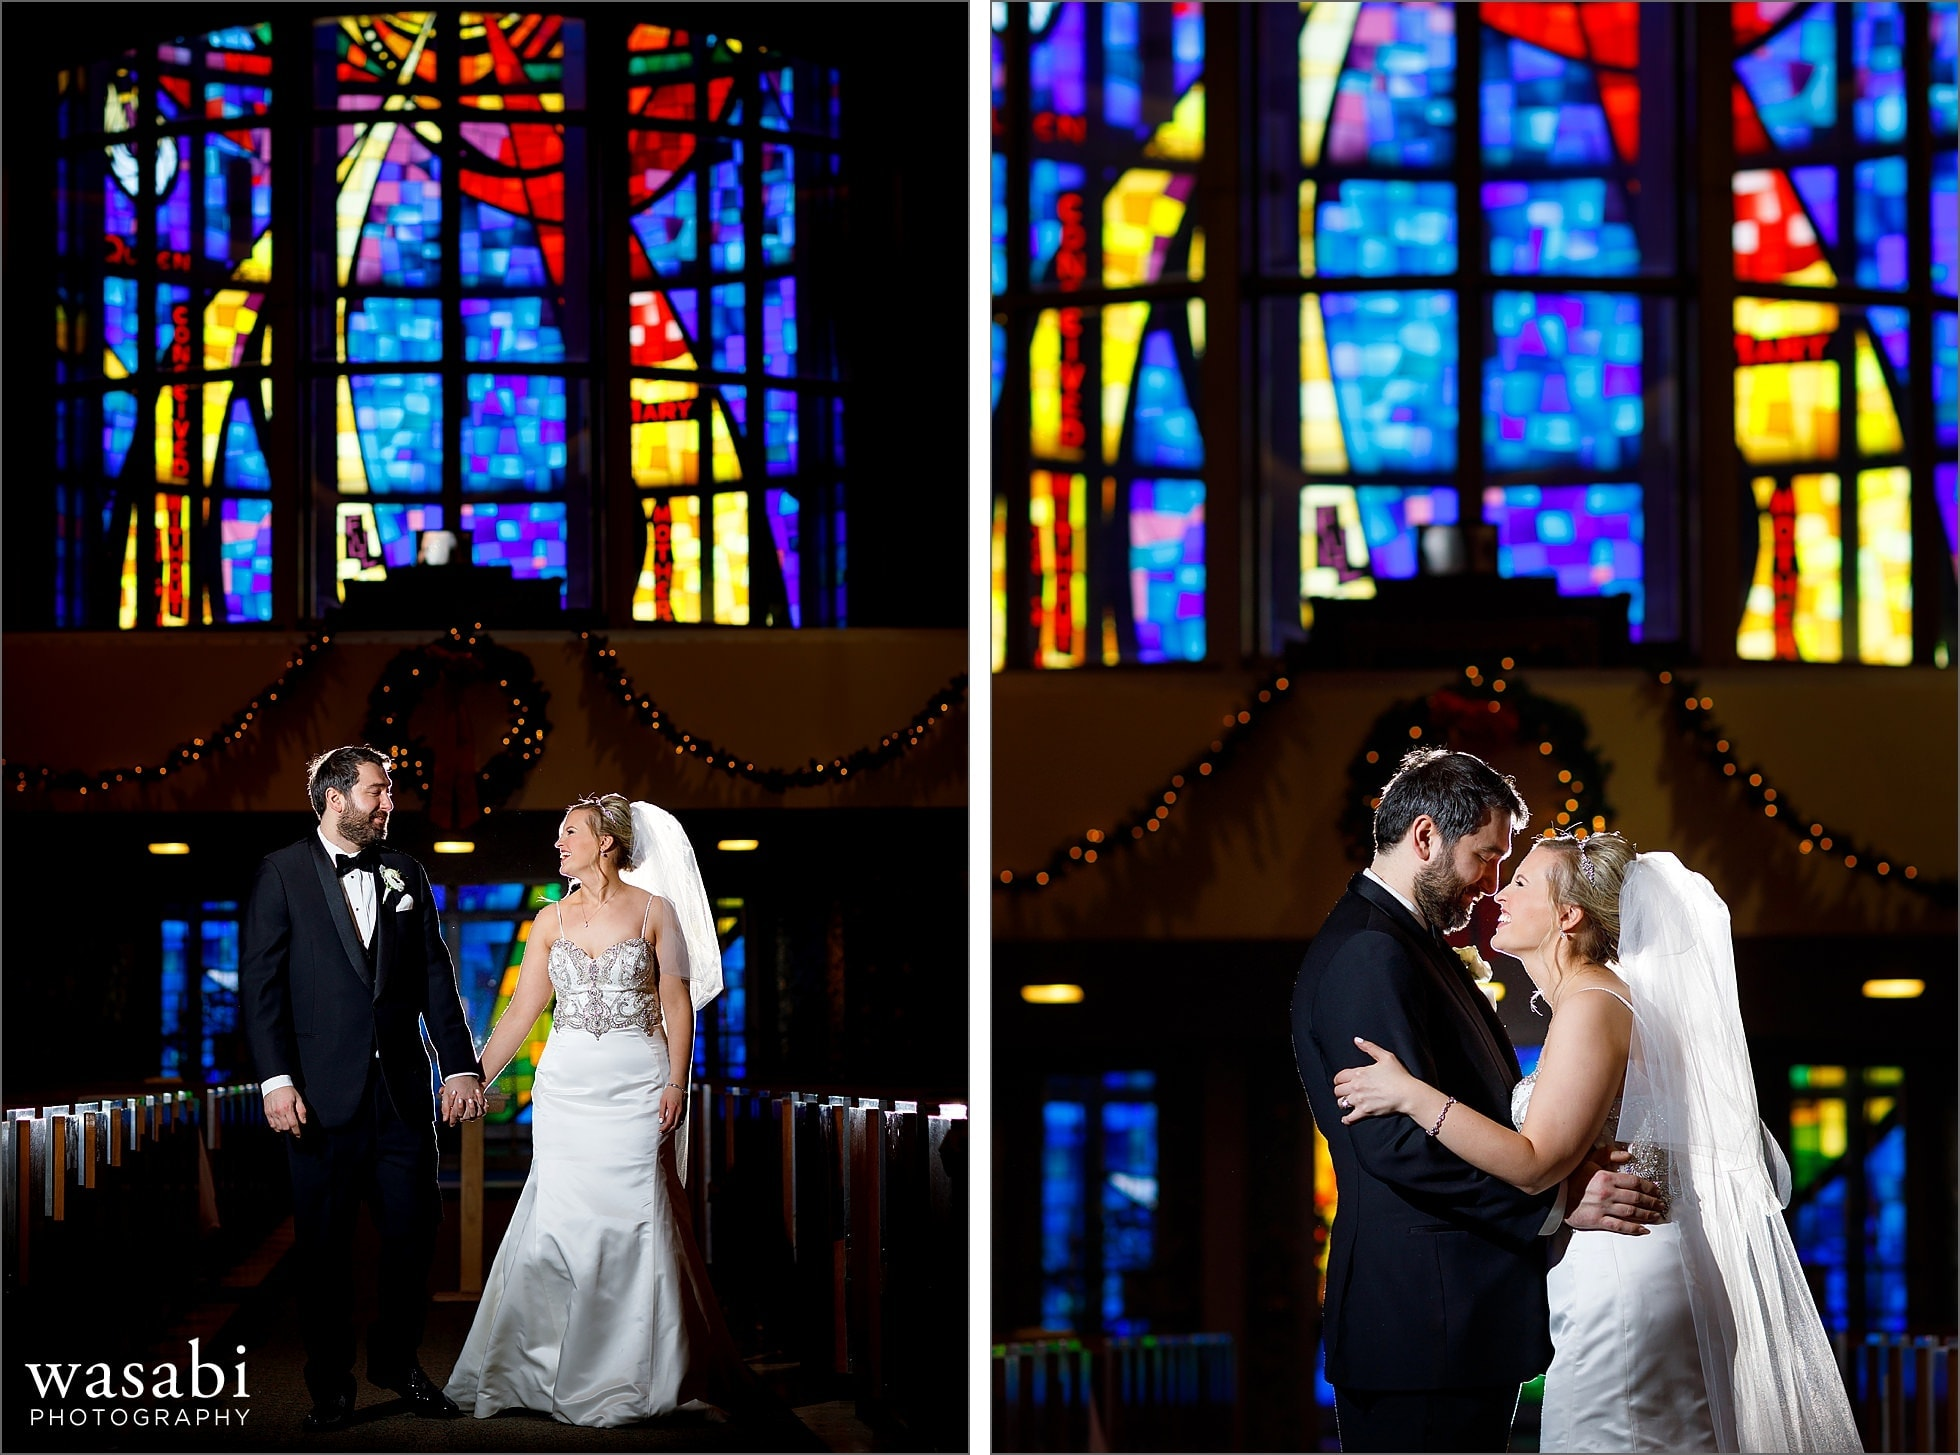 backlit portrait in wedding aisle with stained glass in the background at Immaculate Conception Catholic Church in Chicago